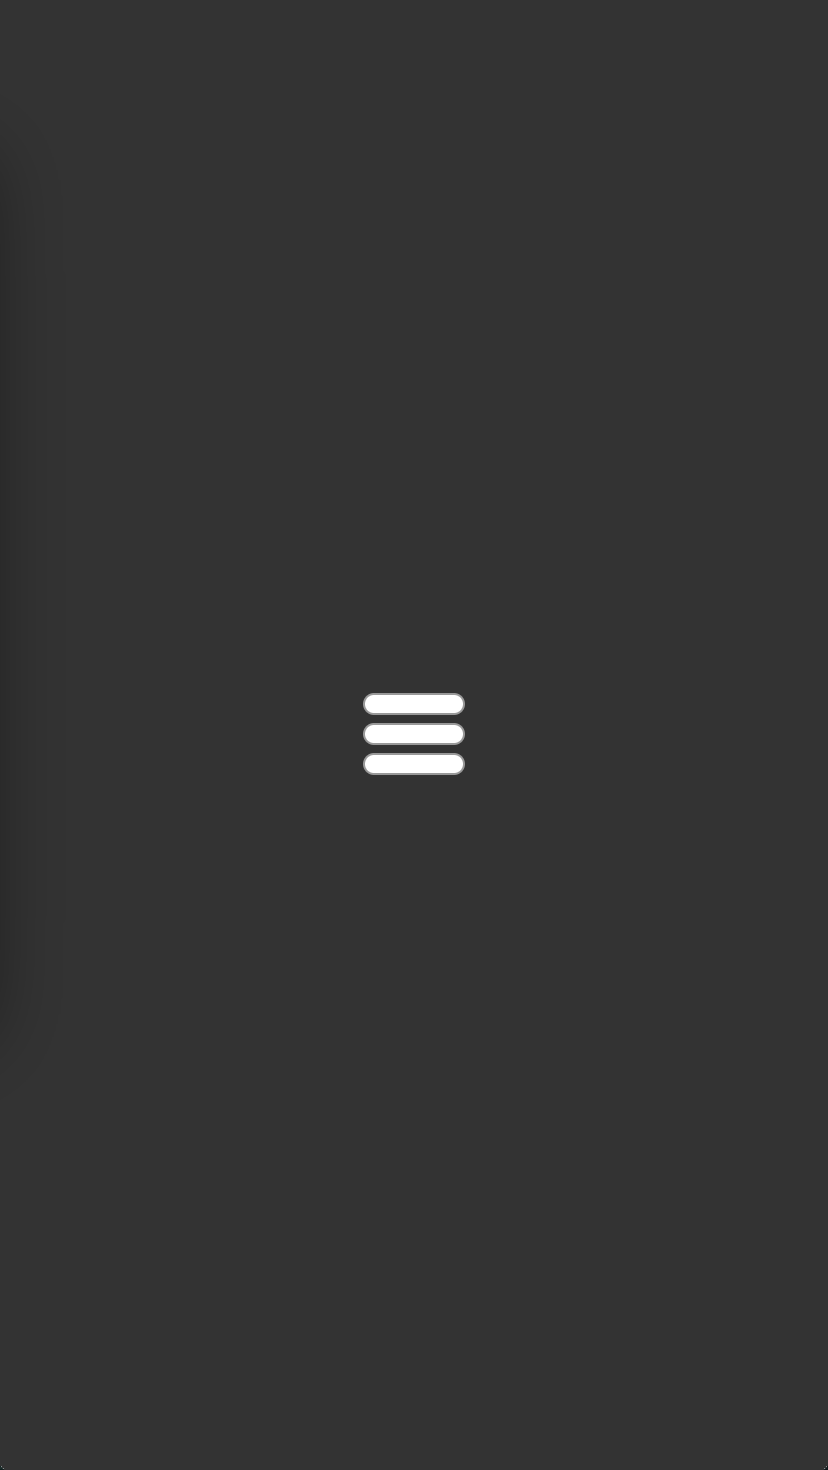 Animated hamburger icon